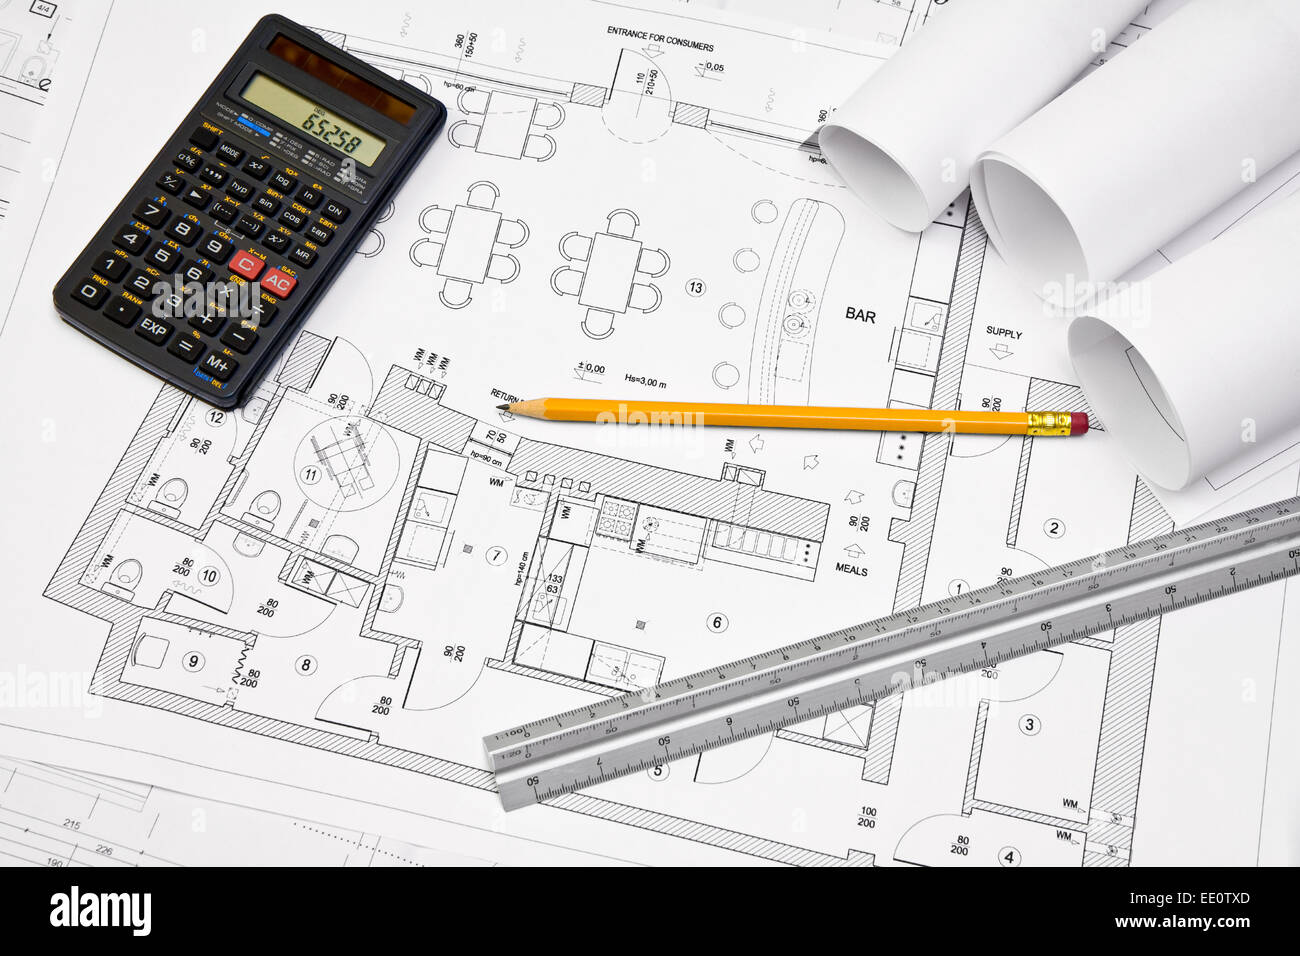 Calculator, Scale Ruler And Pencil On Architectural